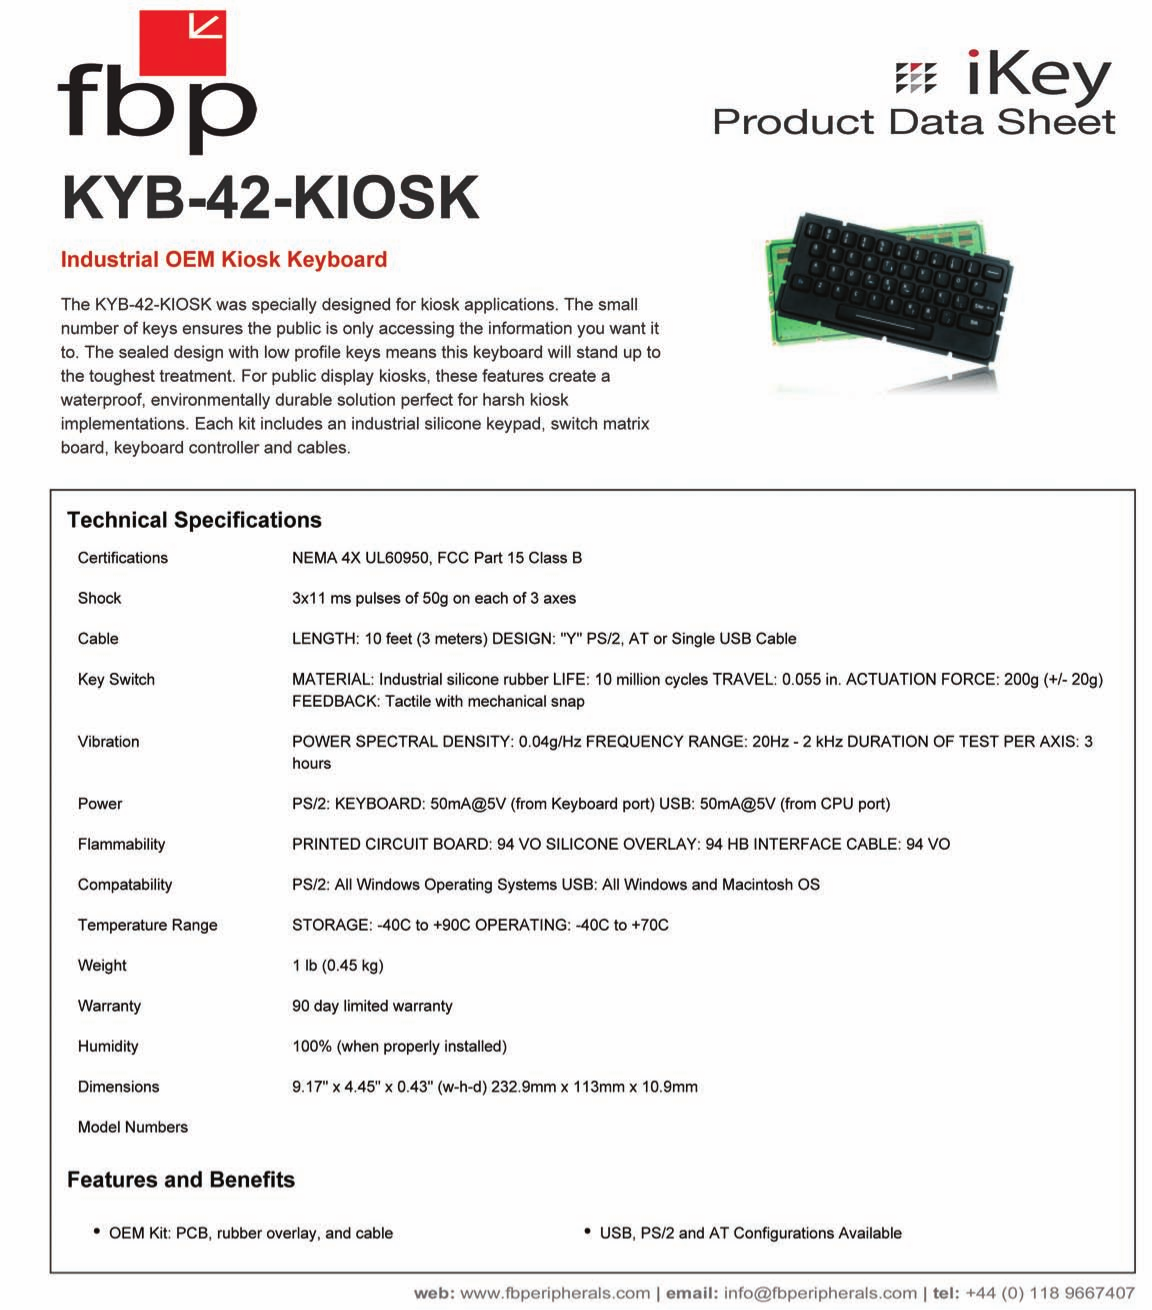 pdf for iKey Keyboard KYB-42-KIOSK manual